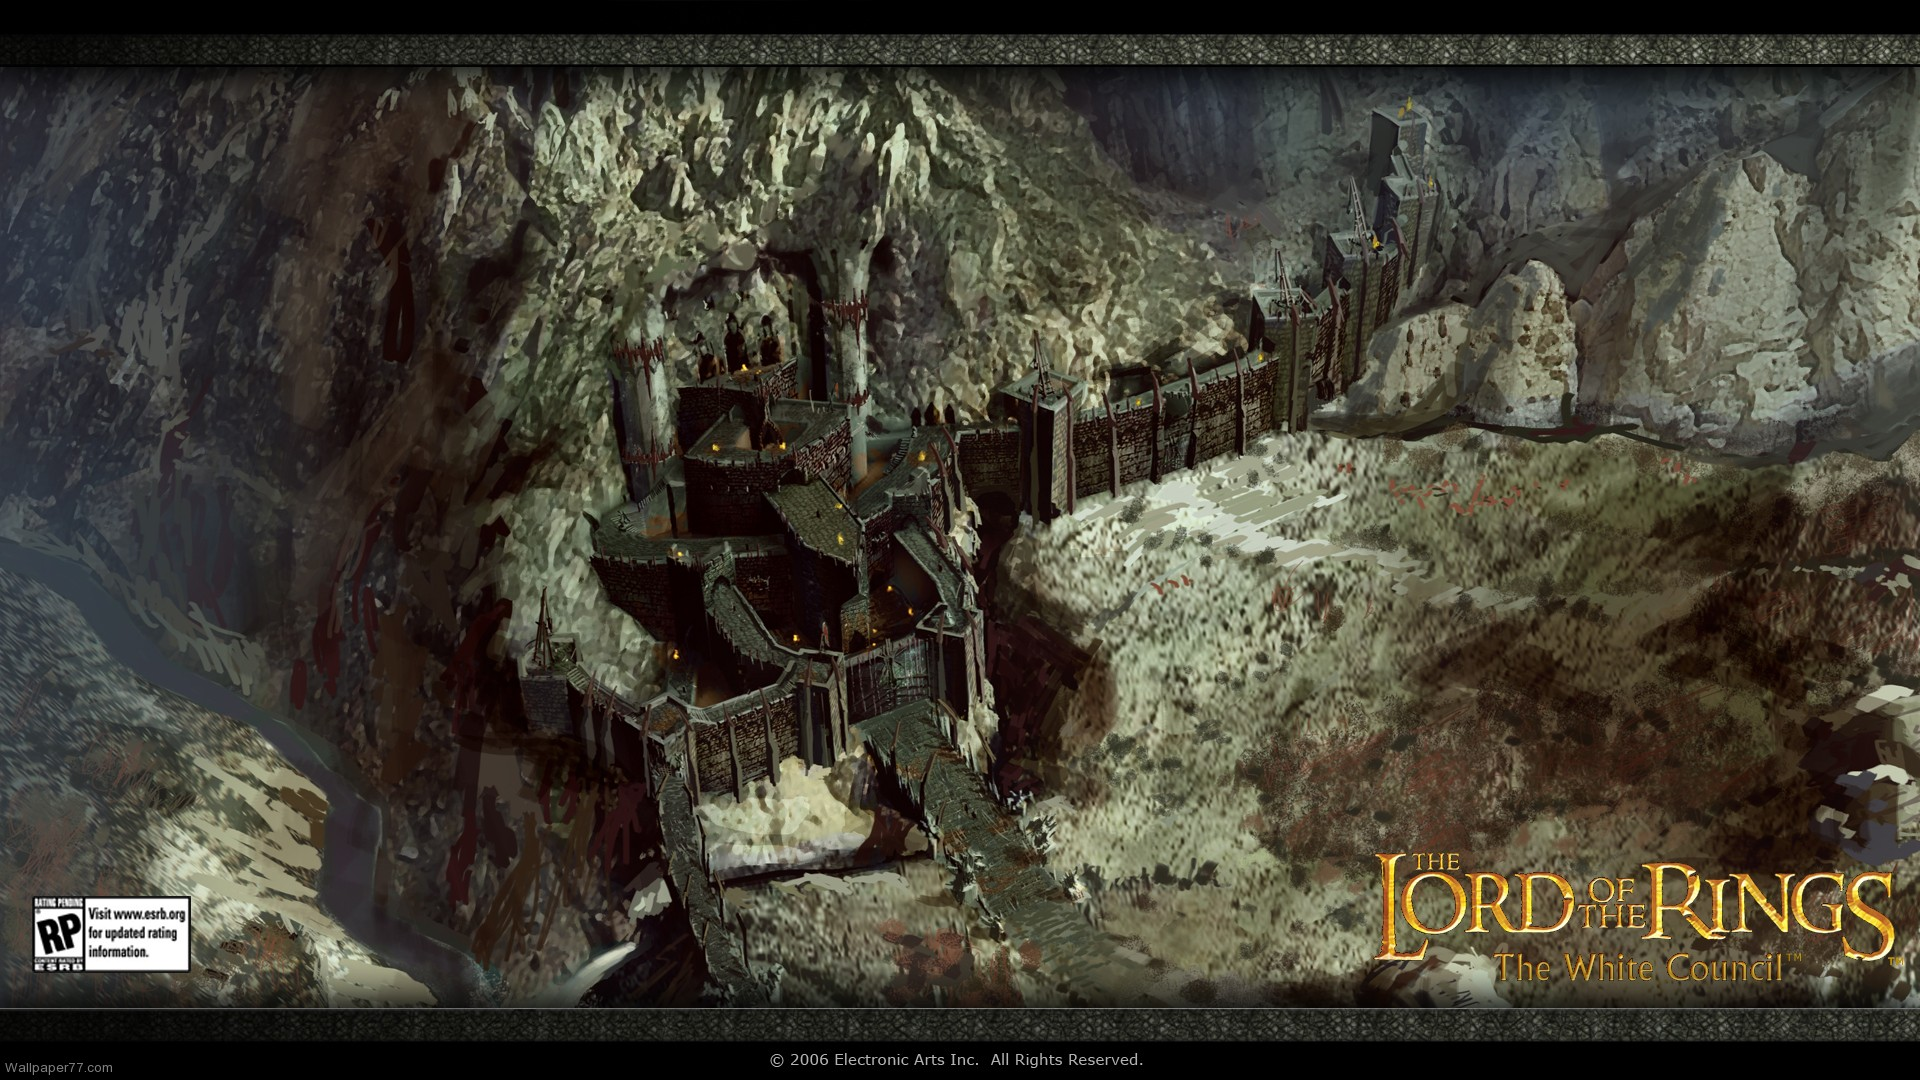 Lord-of-the-Rings-Wallpaper-1-lord-of-the-rings-wallpaperslord-of-the ...